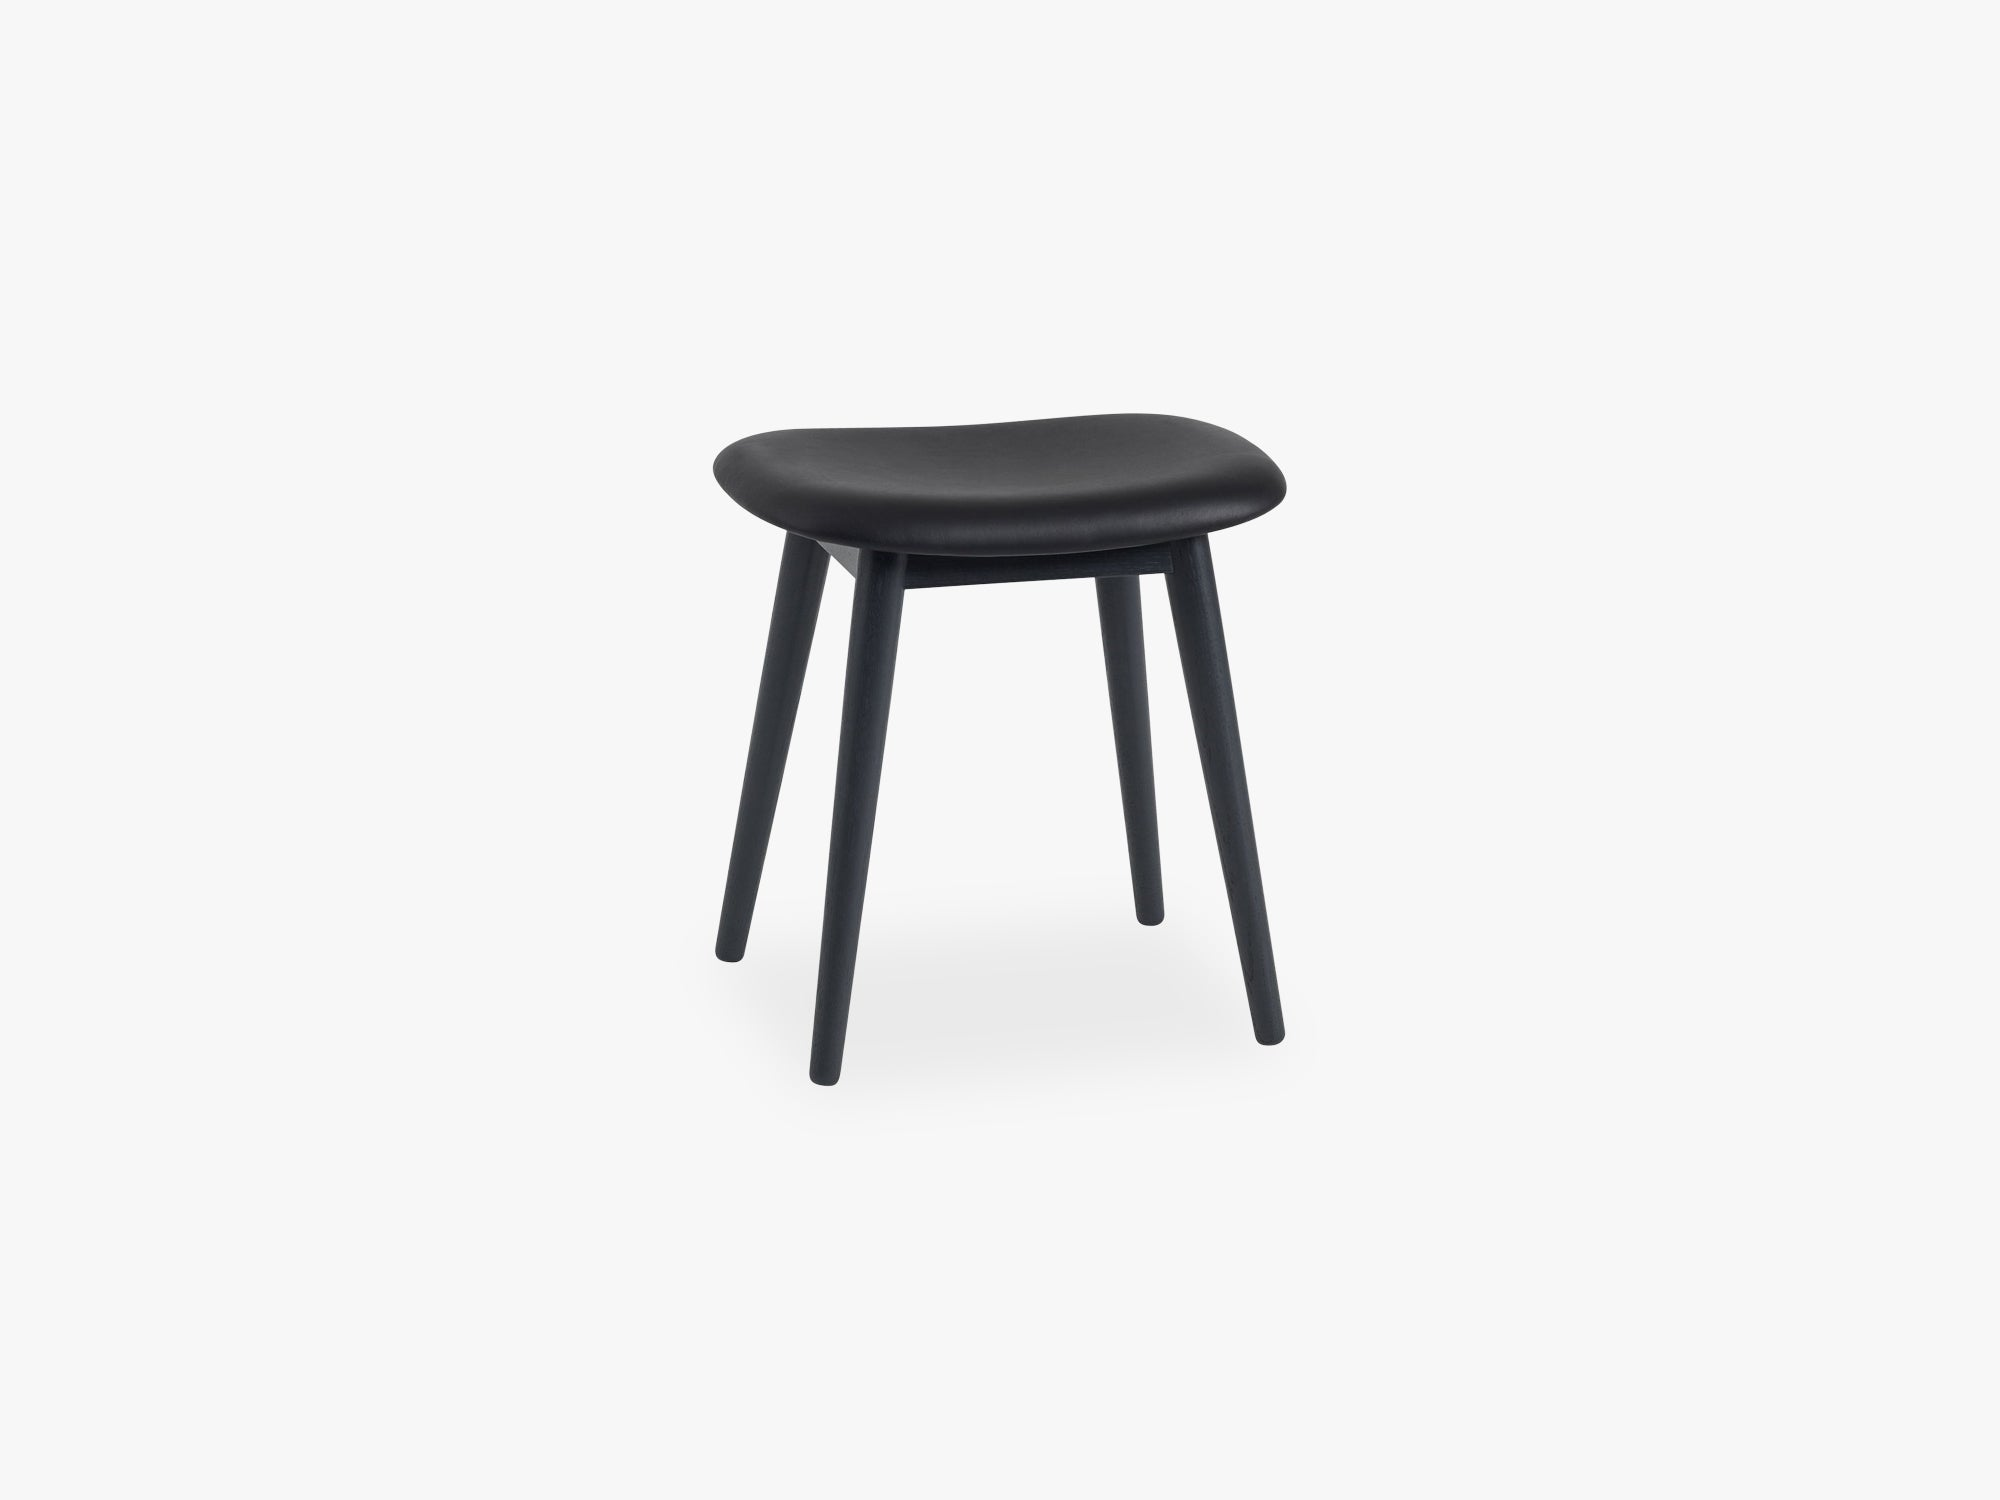 Fiber Stool - Wood Base H: 45 Cm, Silk Leather - Black/Black fra Muuto